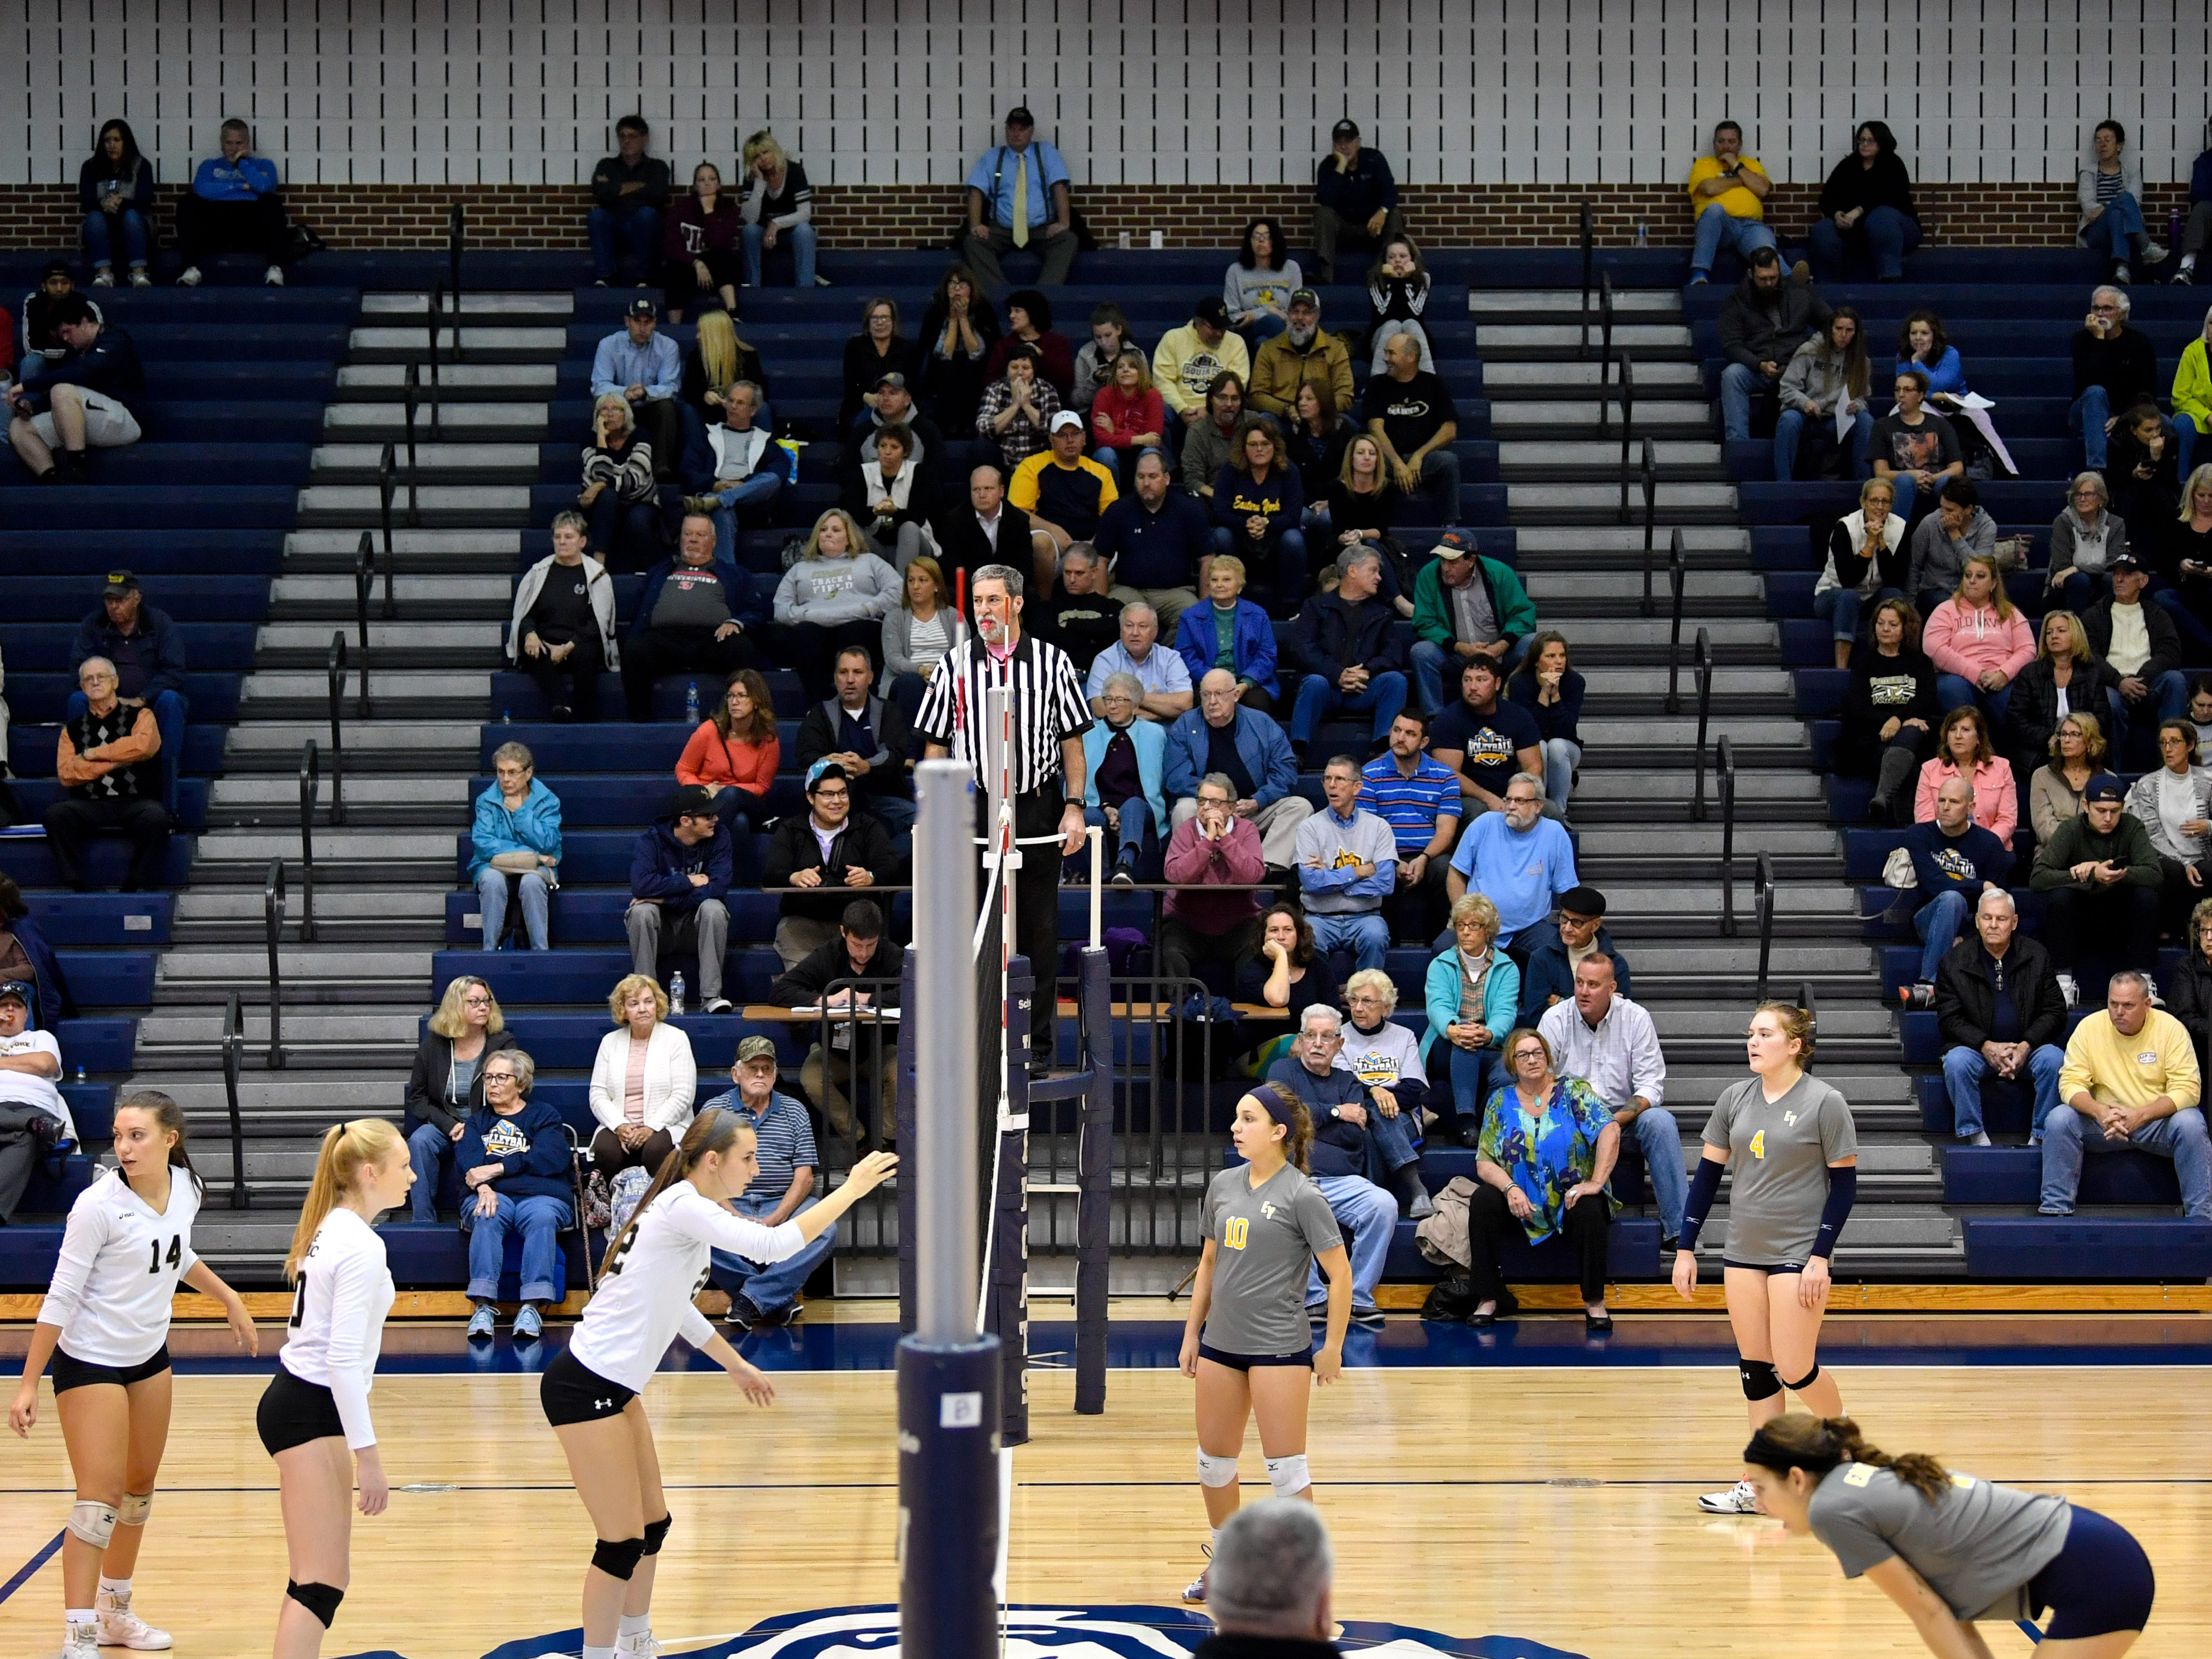 There is large crowd at the YAIAA league volleyball tournament semifinals between Eastern York and Delone Catholic, Tuesday, October 23, 2018. The Squirettes defeated the Golden Knights 3-2.